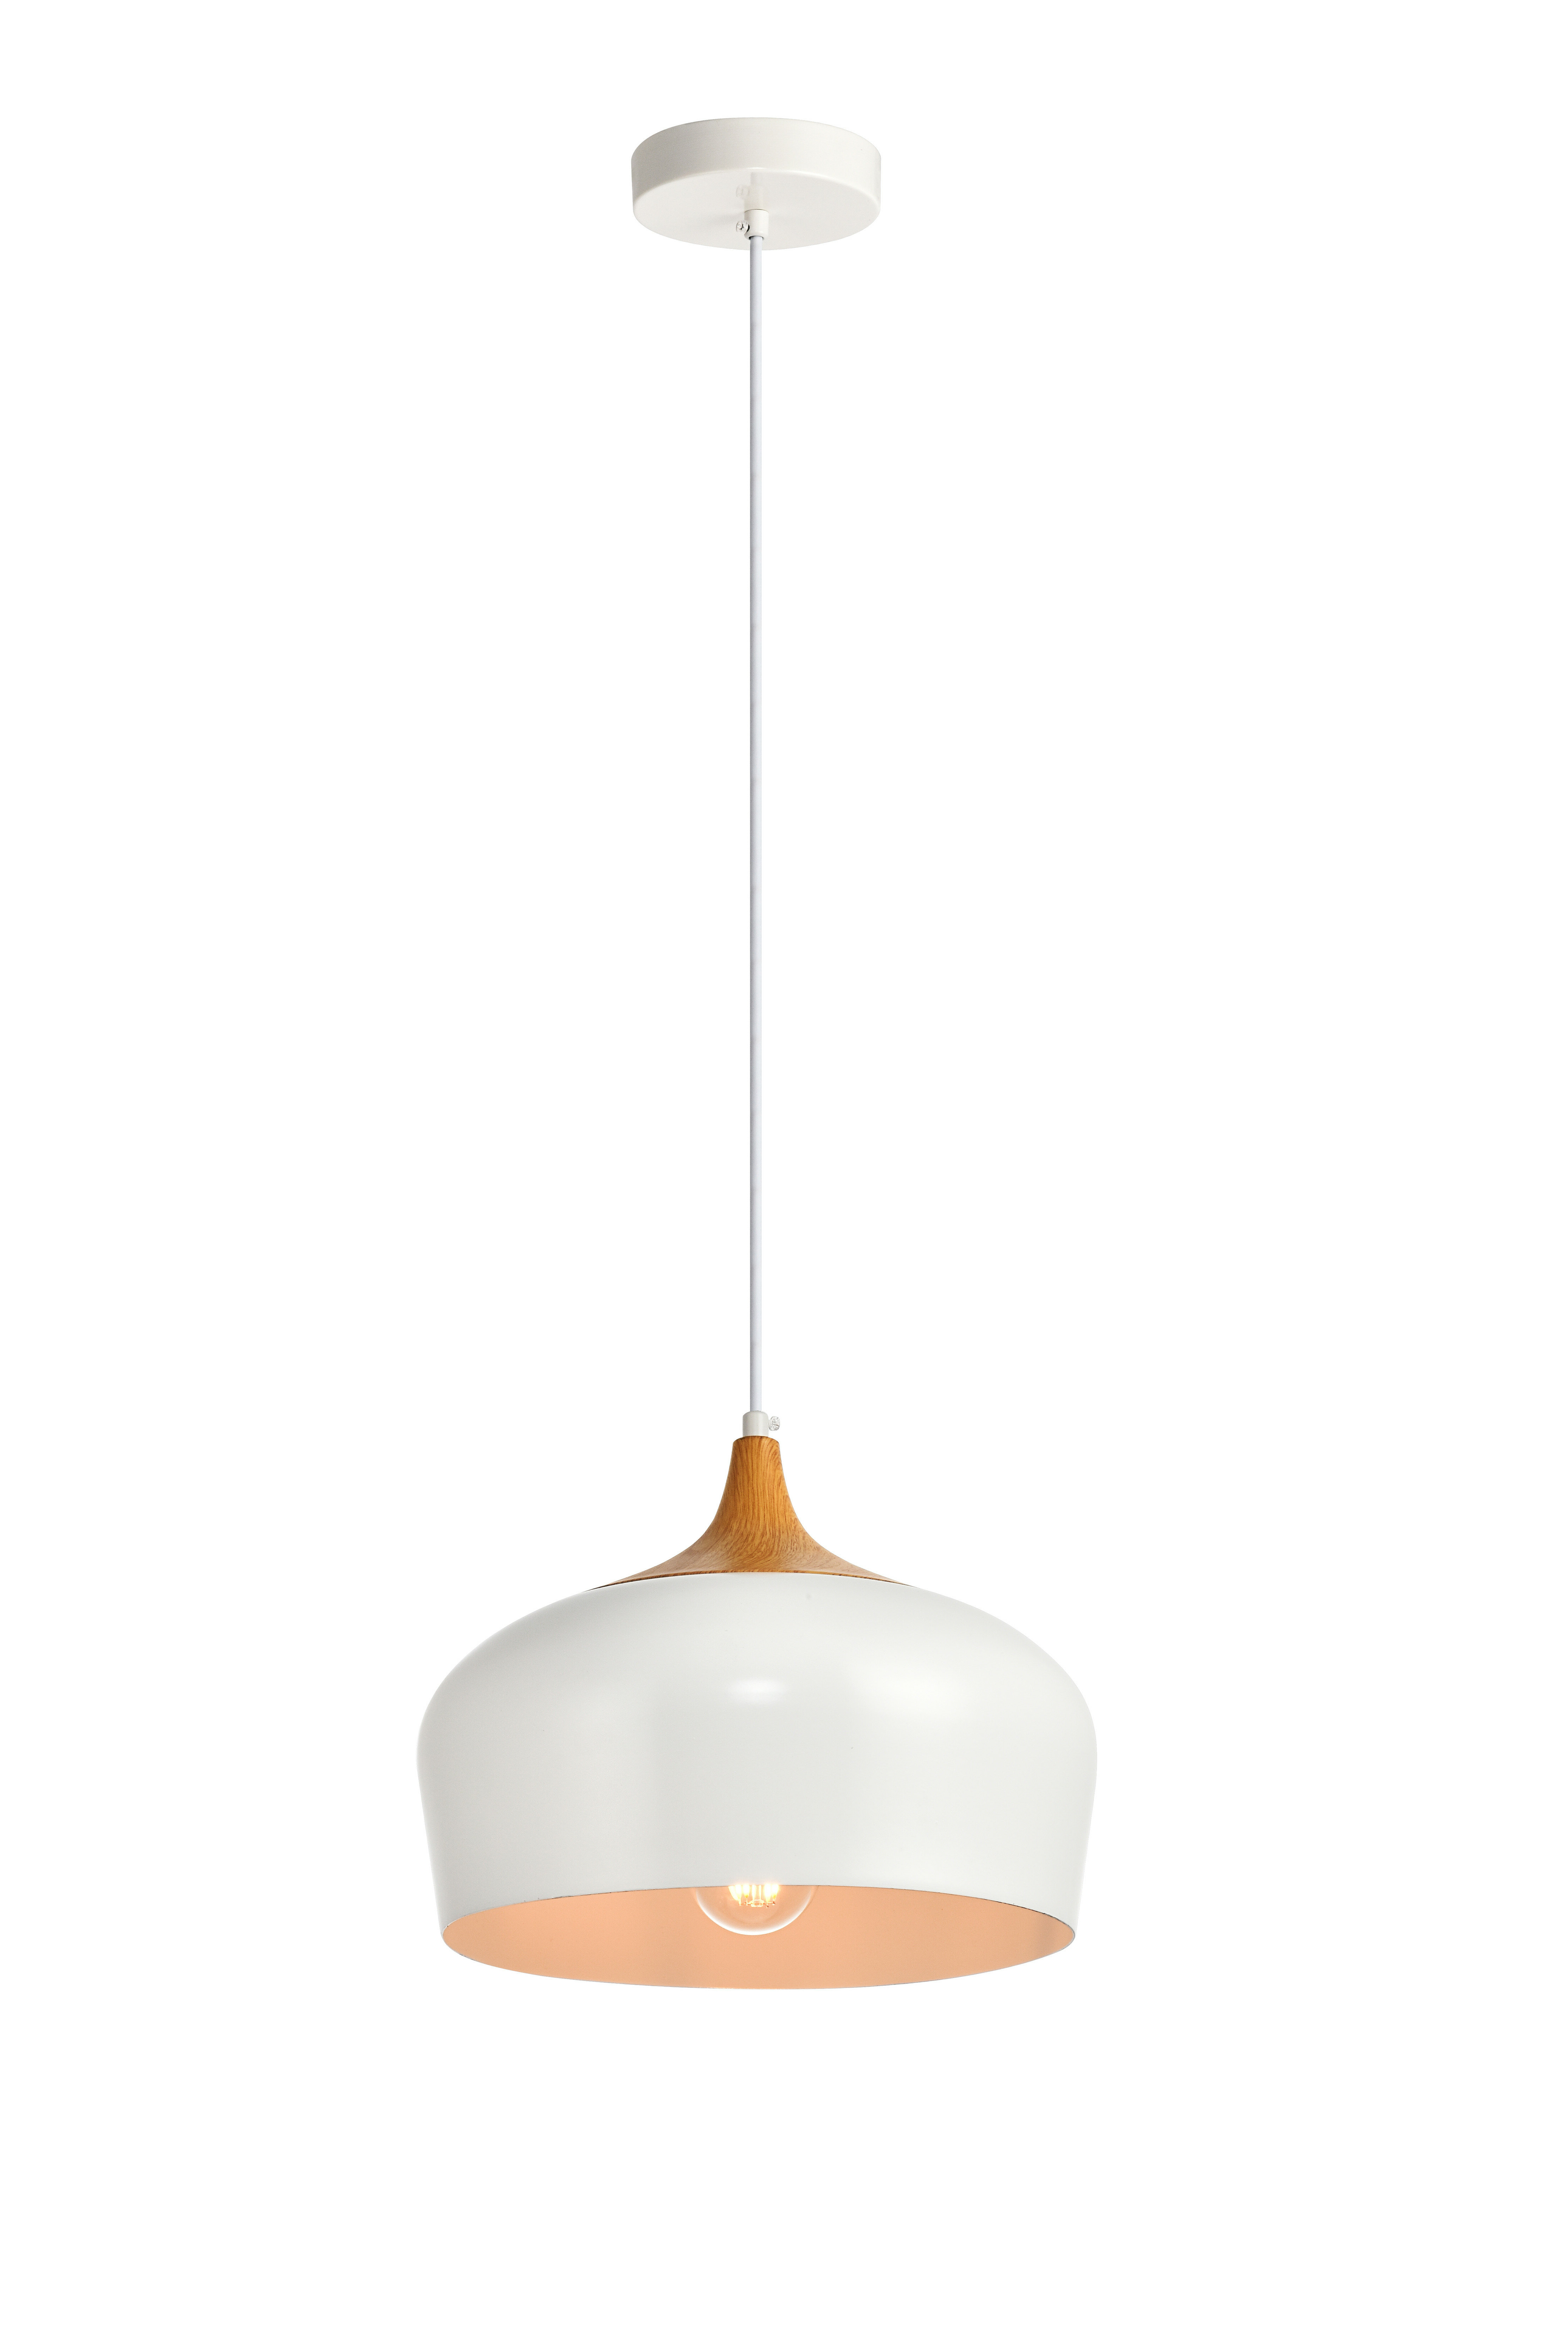 Nadeau 1 Light Single Cone Pendants With Most Up To Date Single Pendant Lighting You'll Love In  (View 13 of 20)